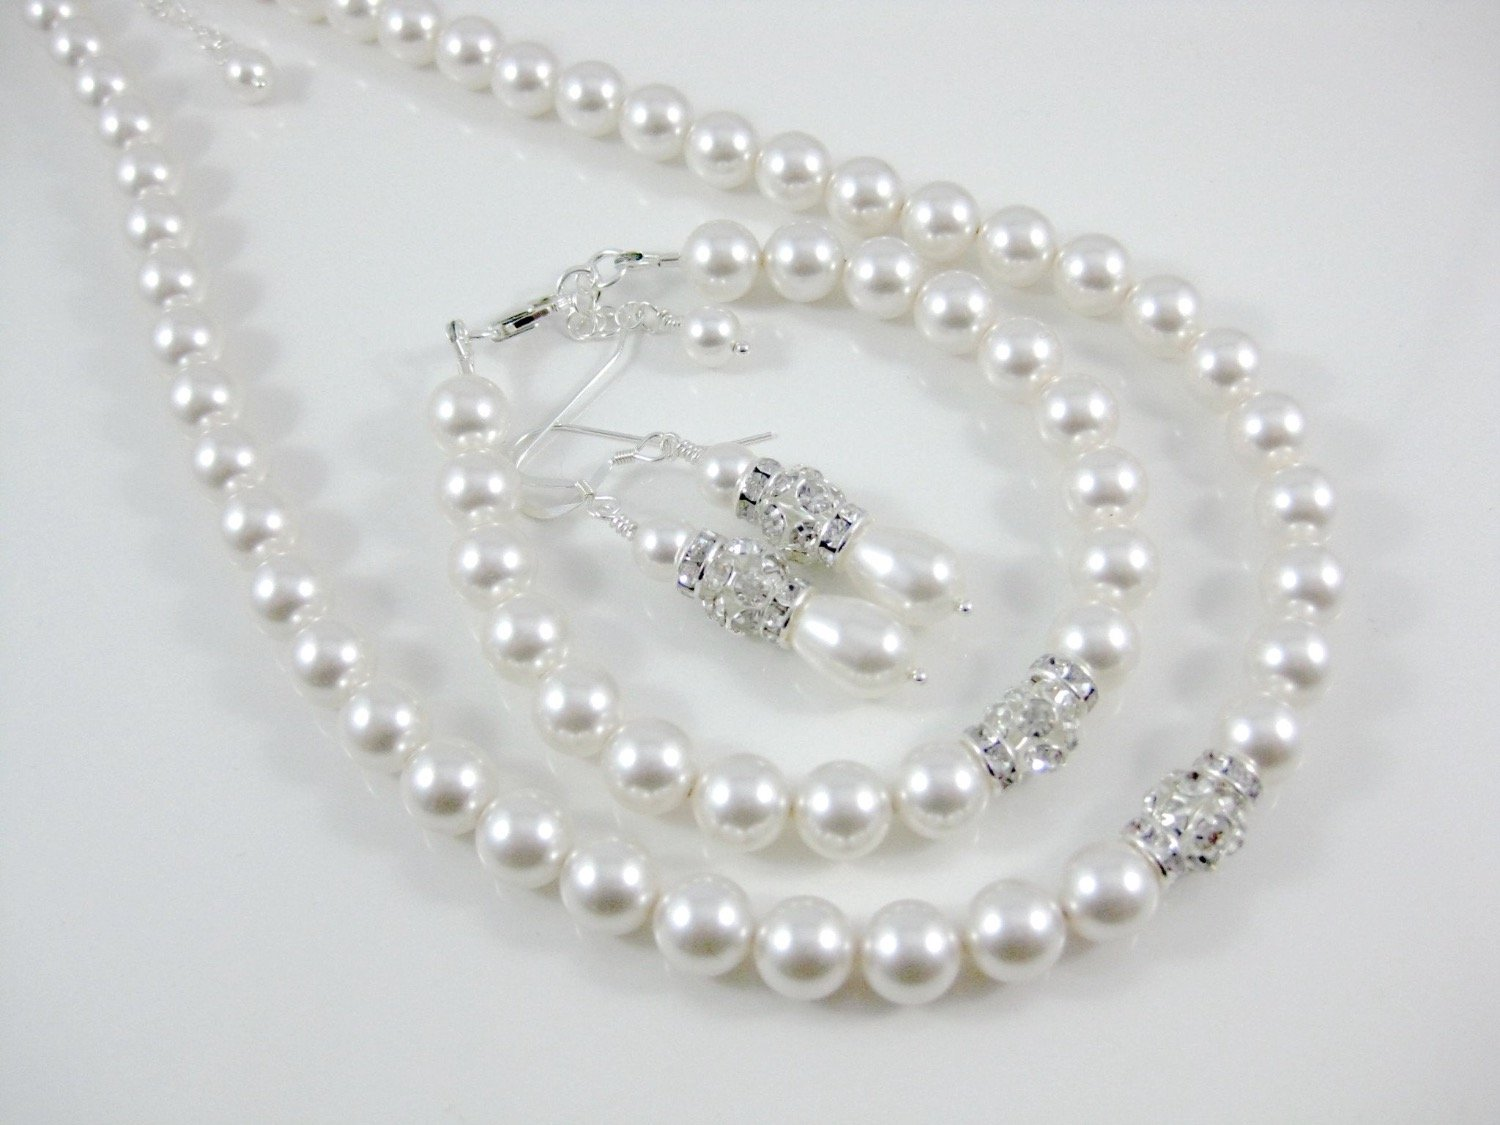 pearl necklace, bracelet and earring set - Clairesbridal - 3